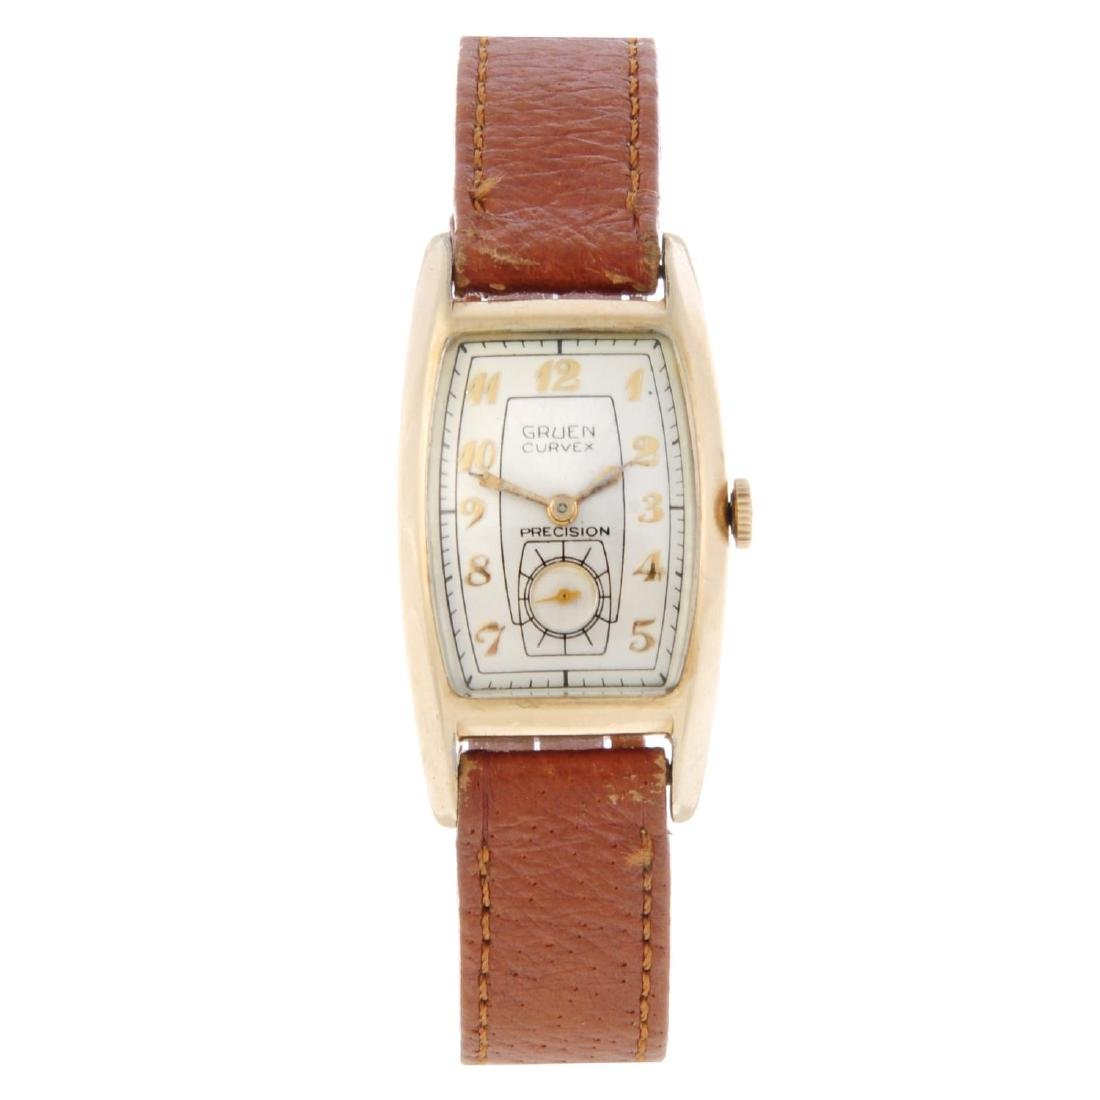 GRUEN - a gentleman's Curvex wrist watch. Gold filled